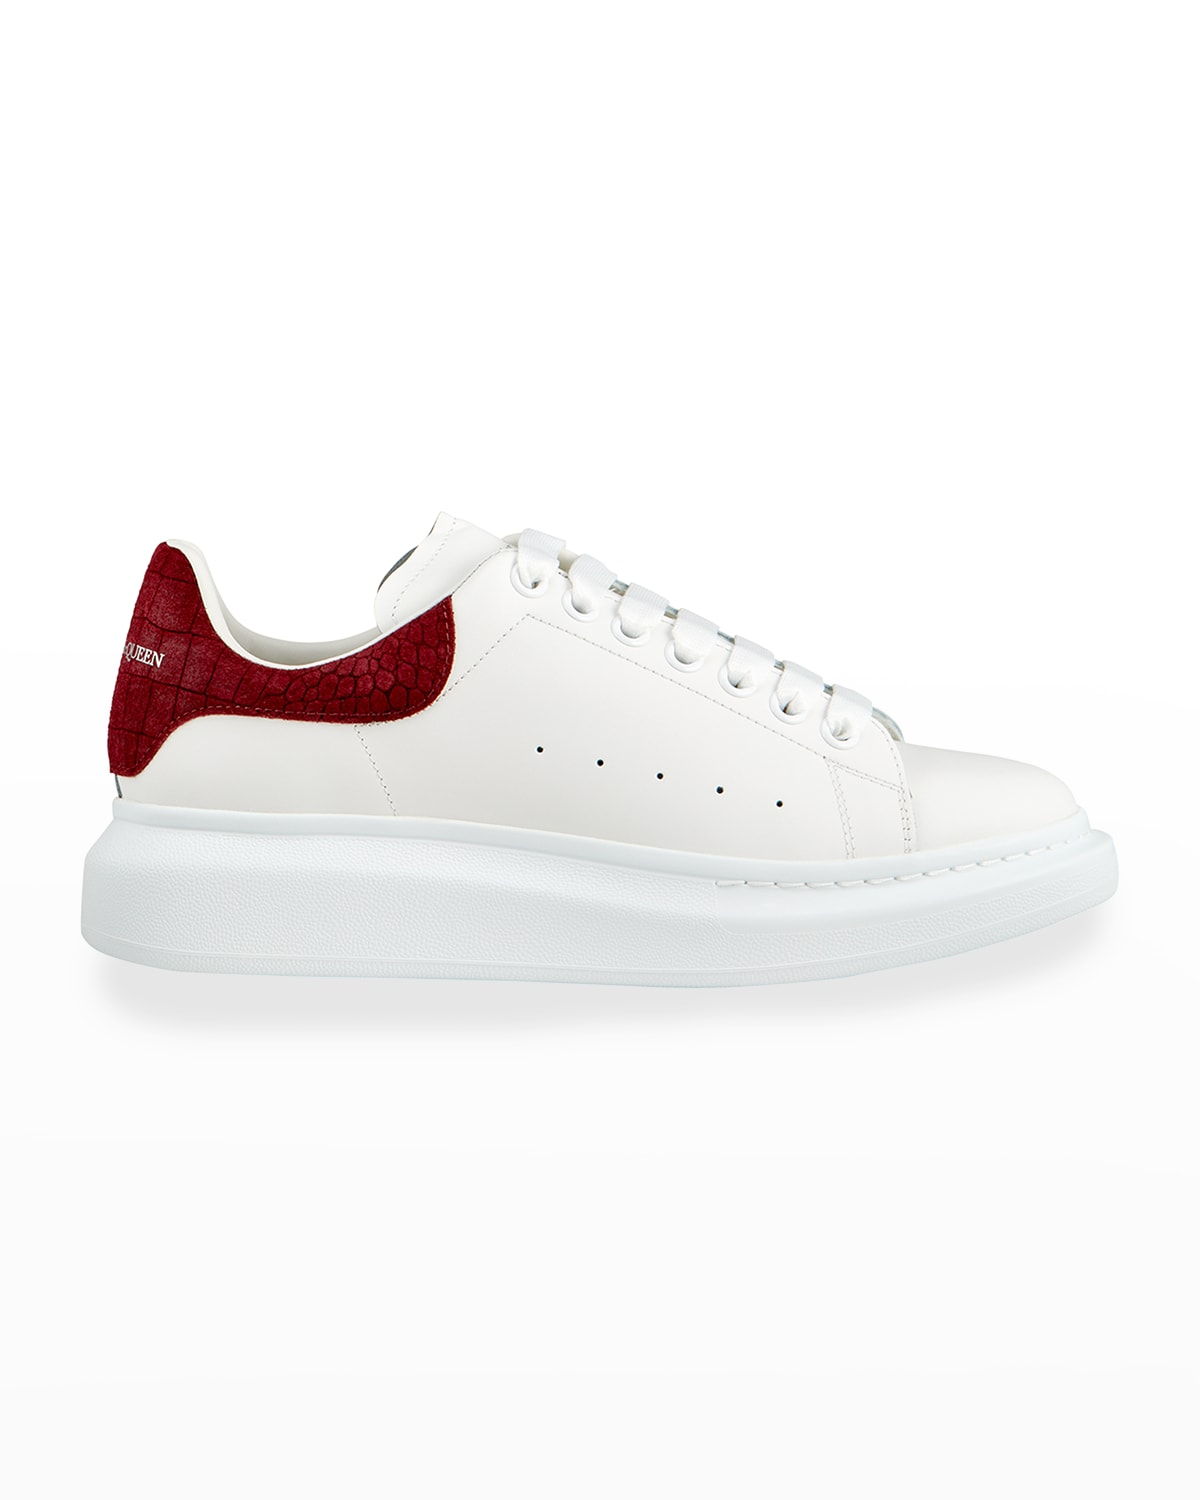 Men's Leather Chunky Sneakers w/ Croc-Embossed Trim